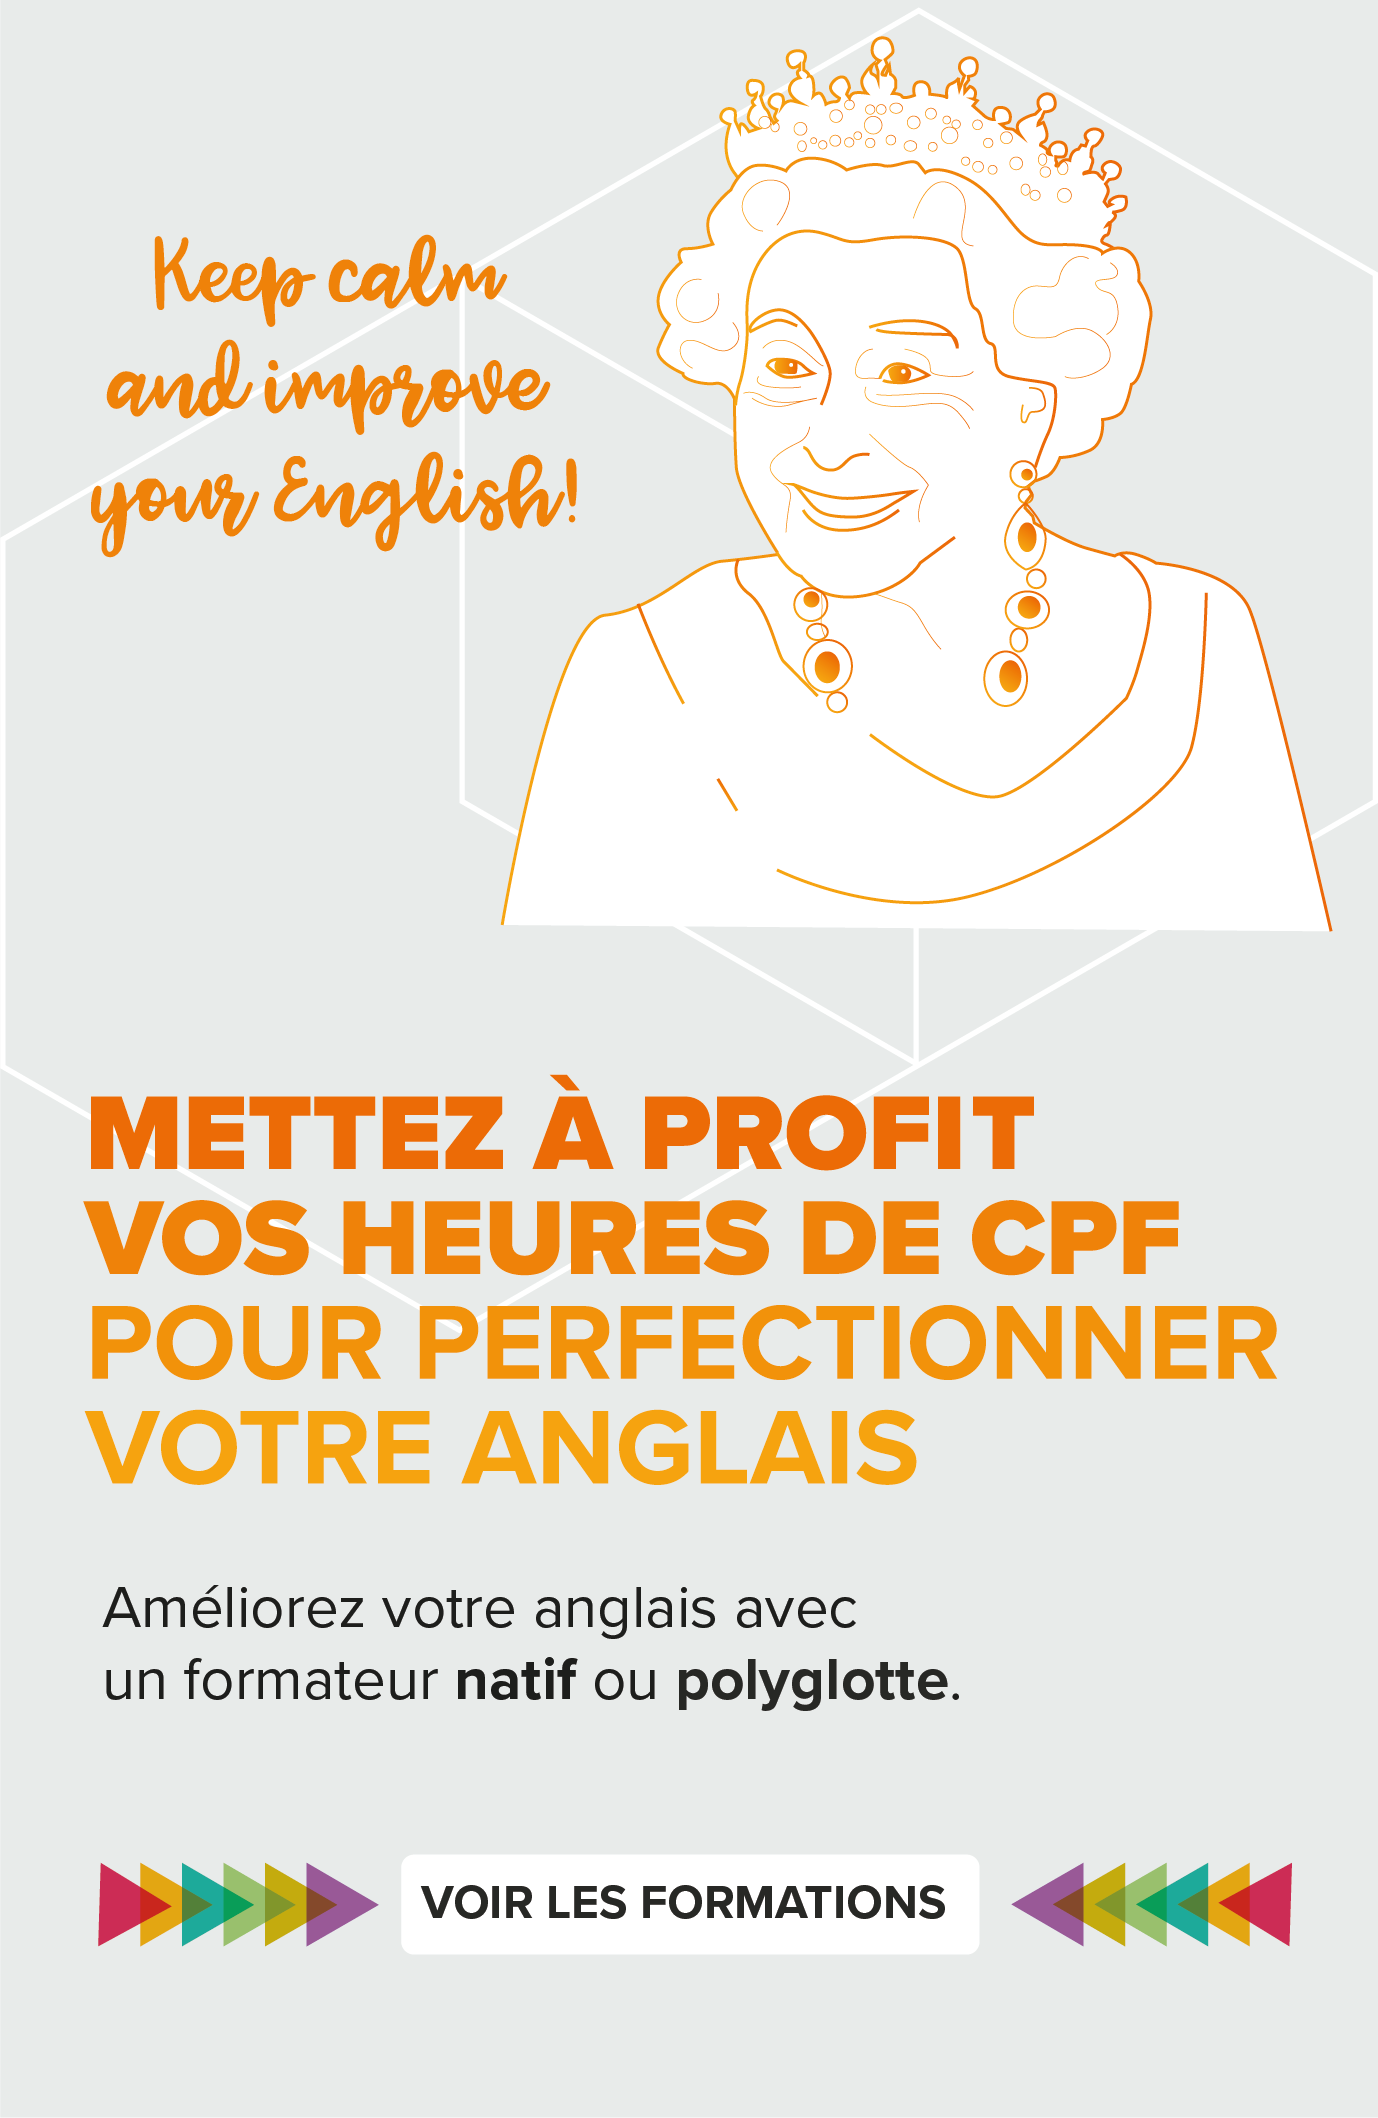 Formation MARKETING & VENTE - Interfor Formation Continue